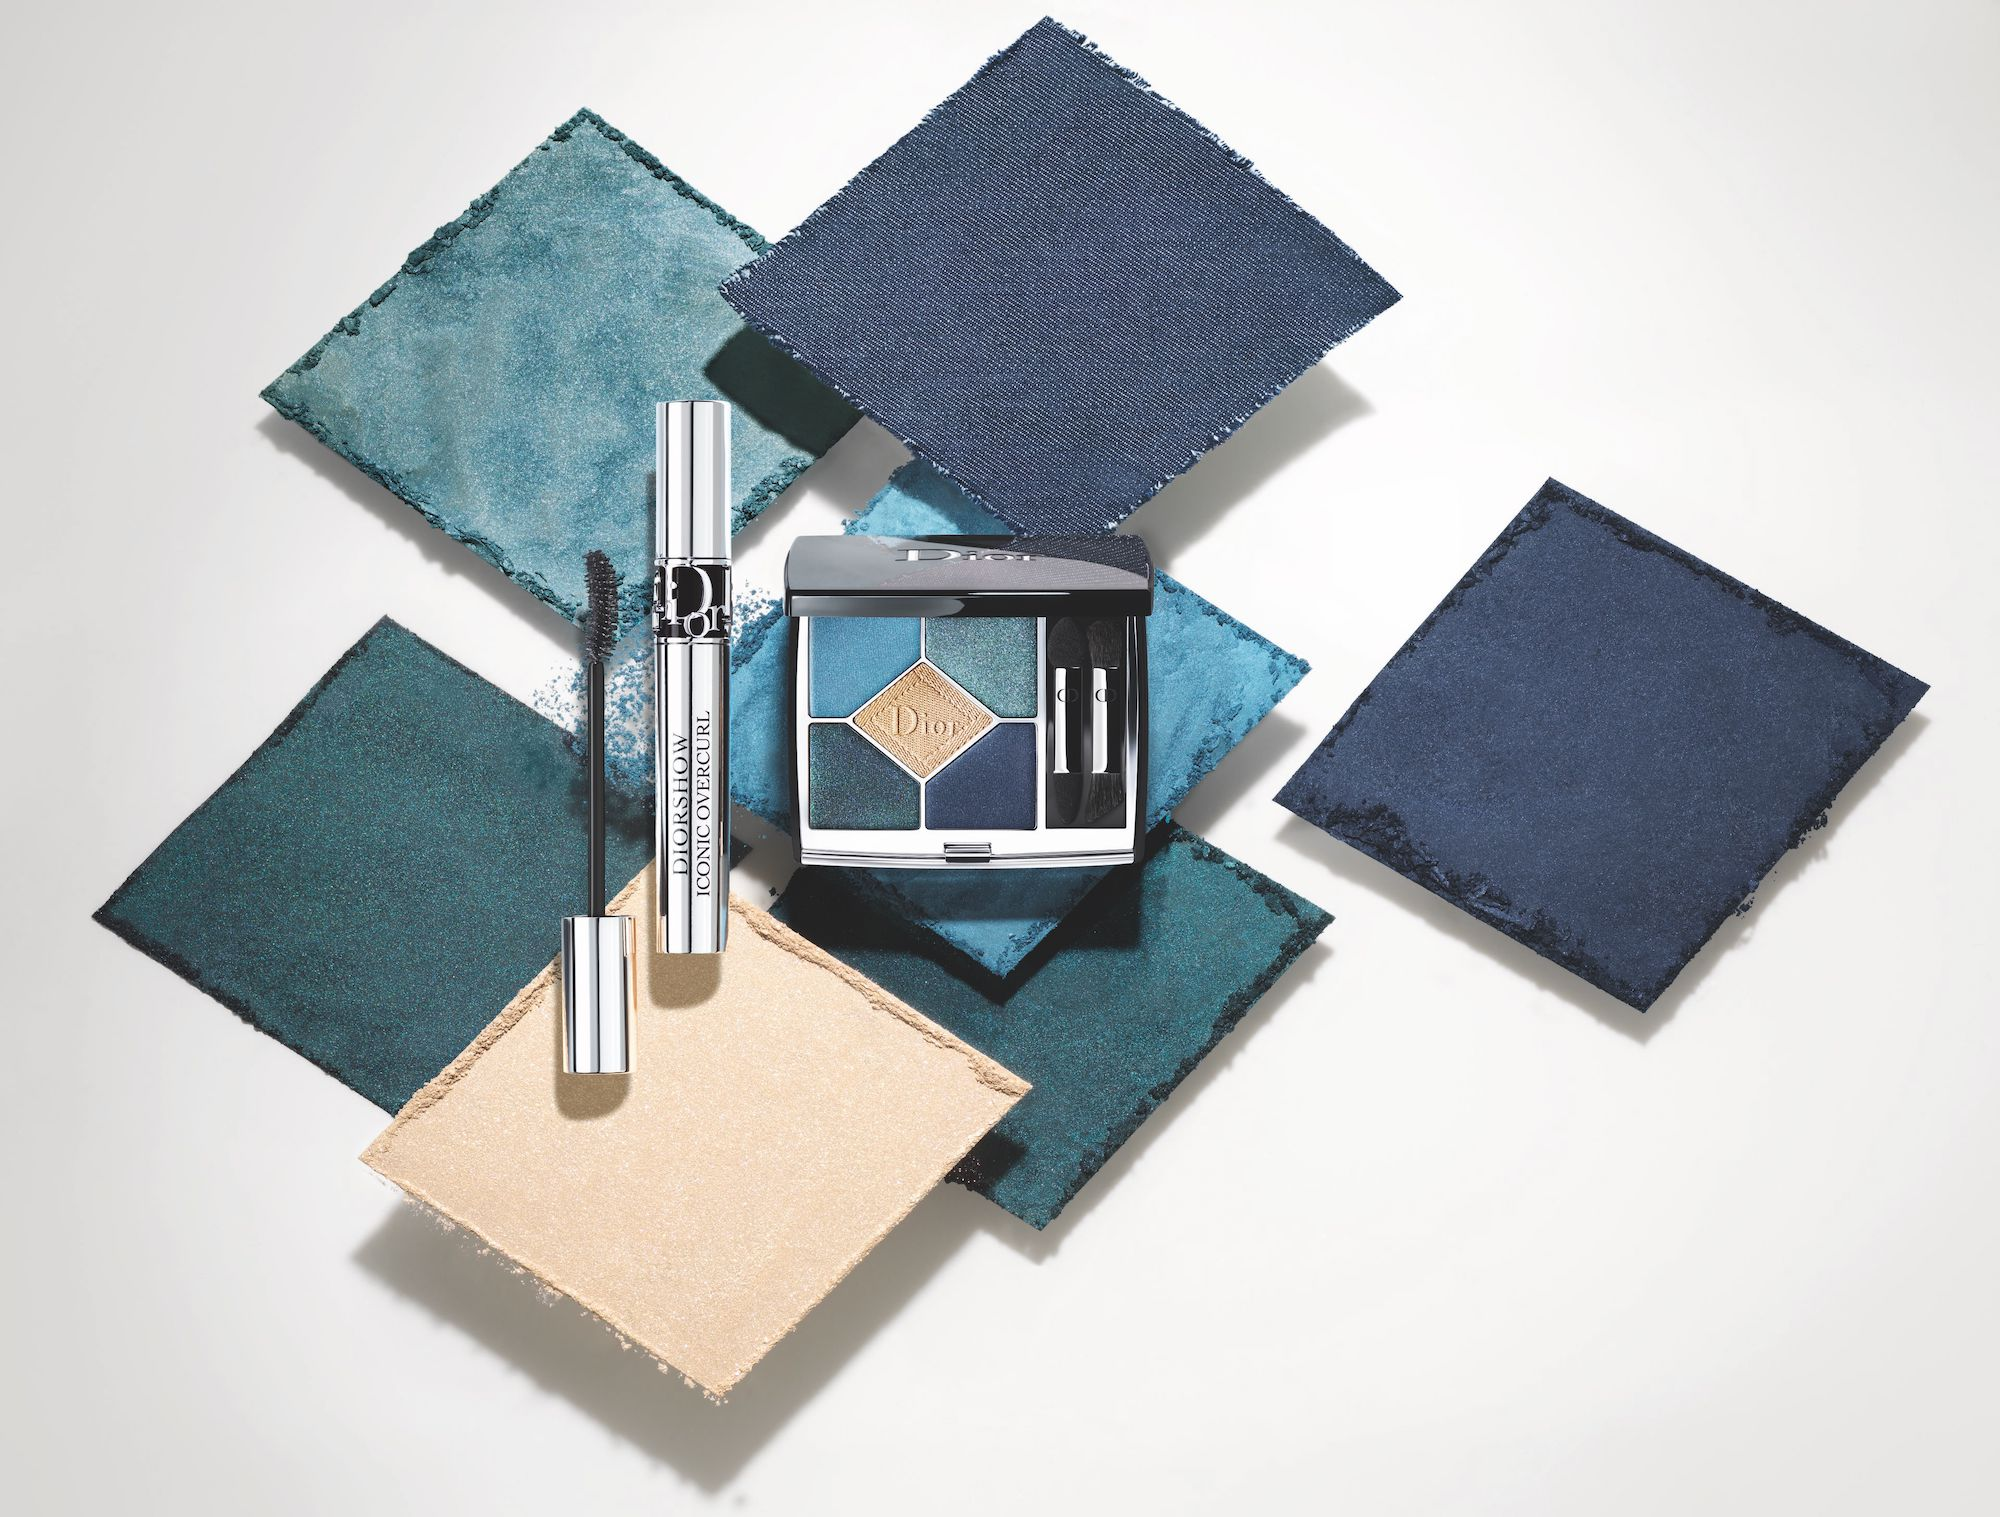 Diorshow Denim 5 Couleurs Eyeshadow